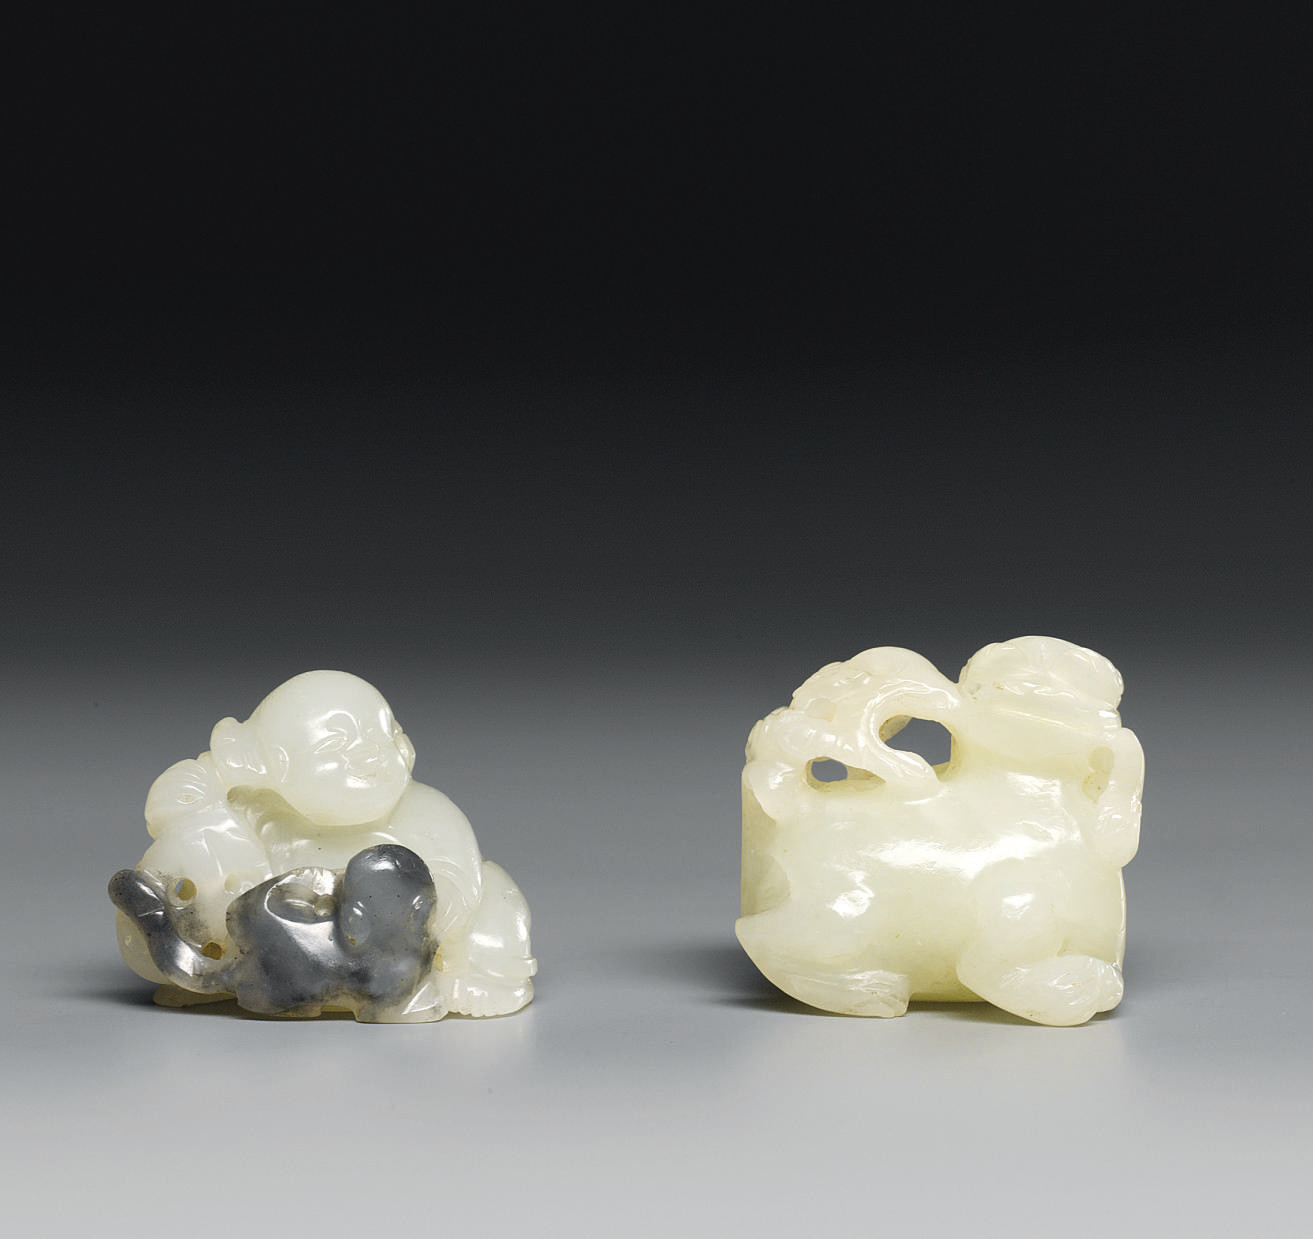 A WHITE AND GREY JADE BOY; AND